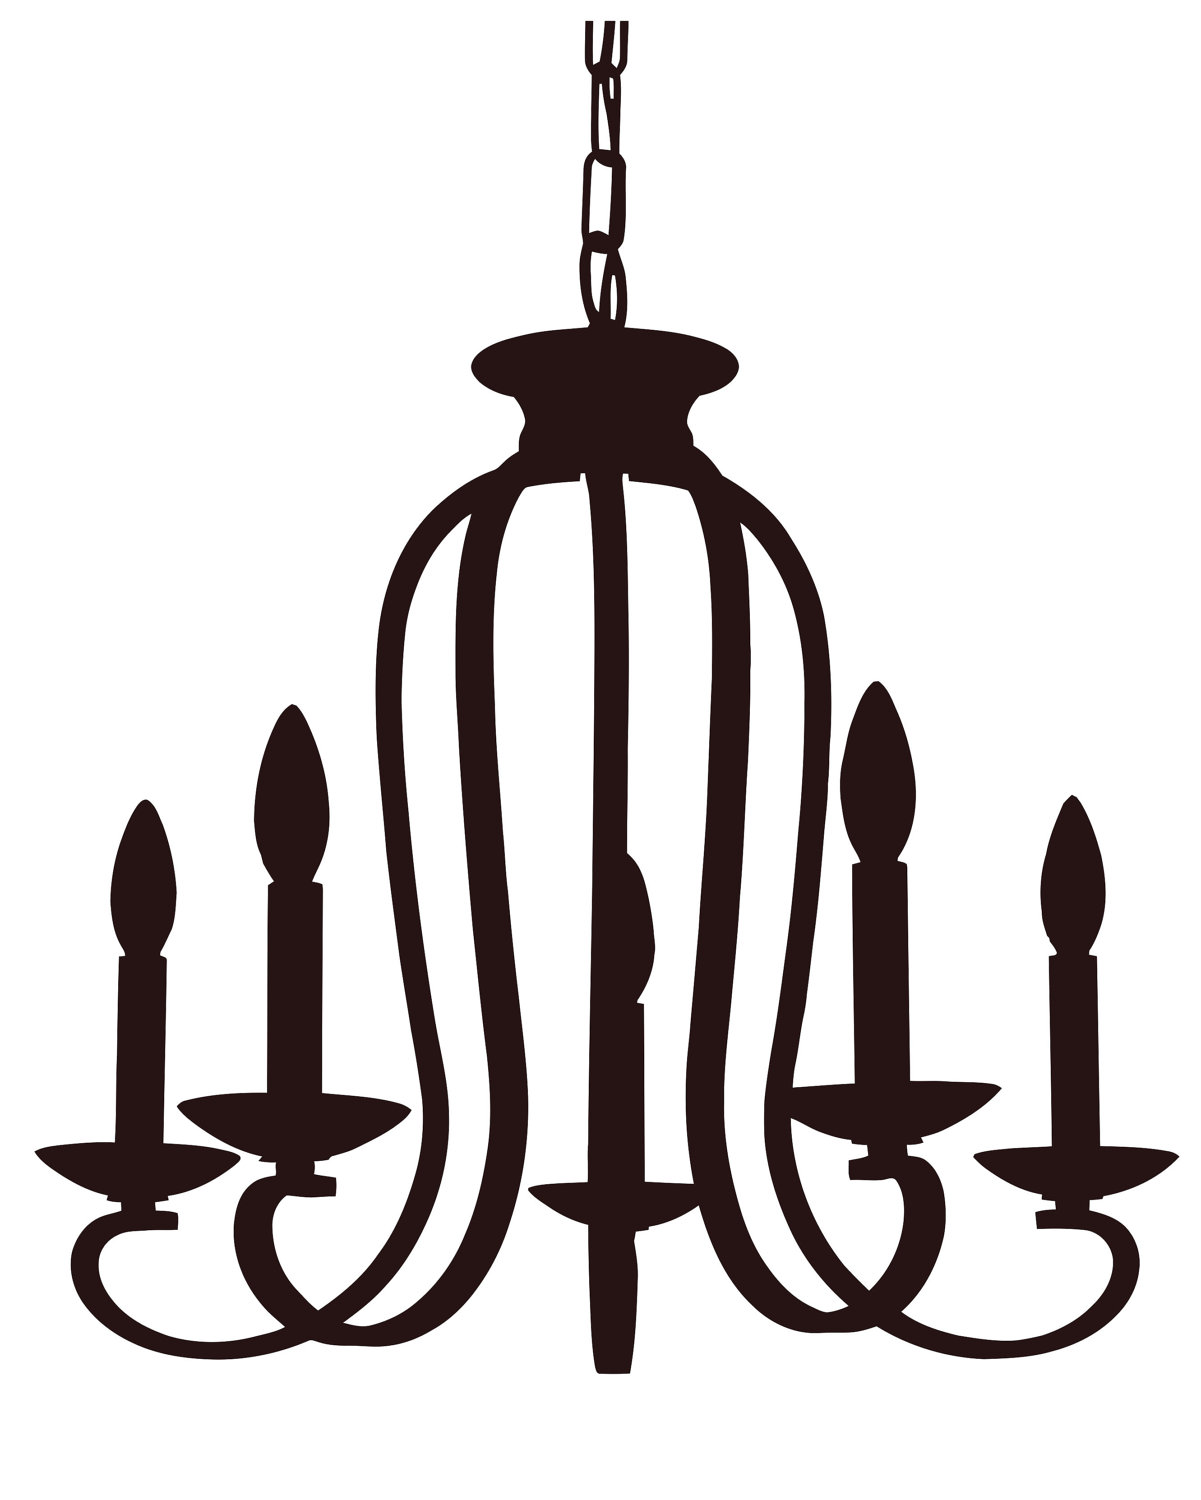 Free cliparts download clip. Chandelier clipart jpg black and white download